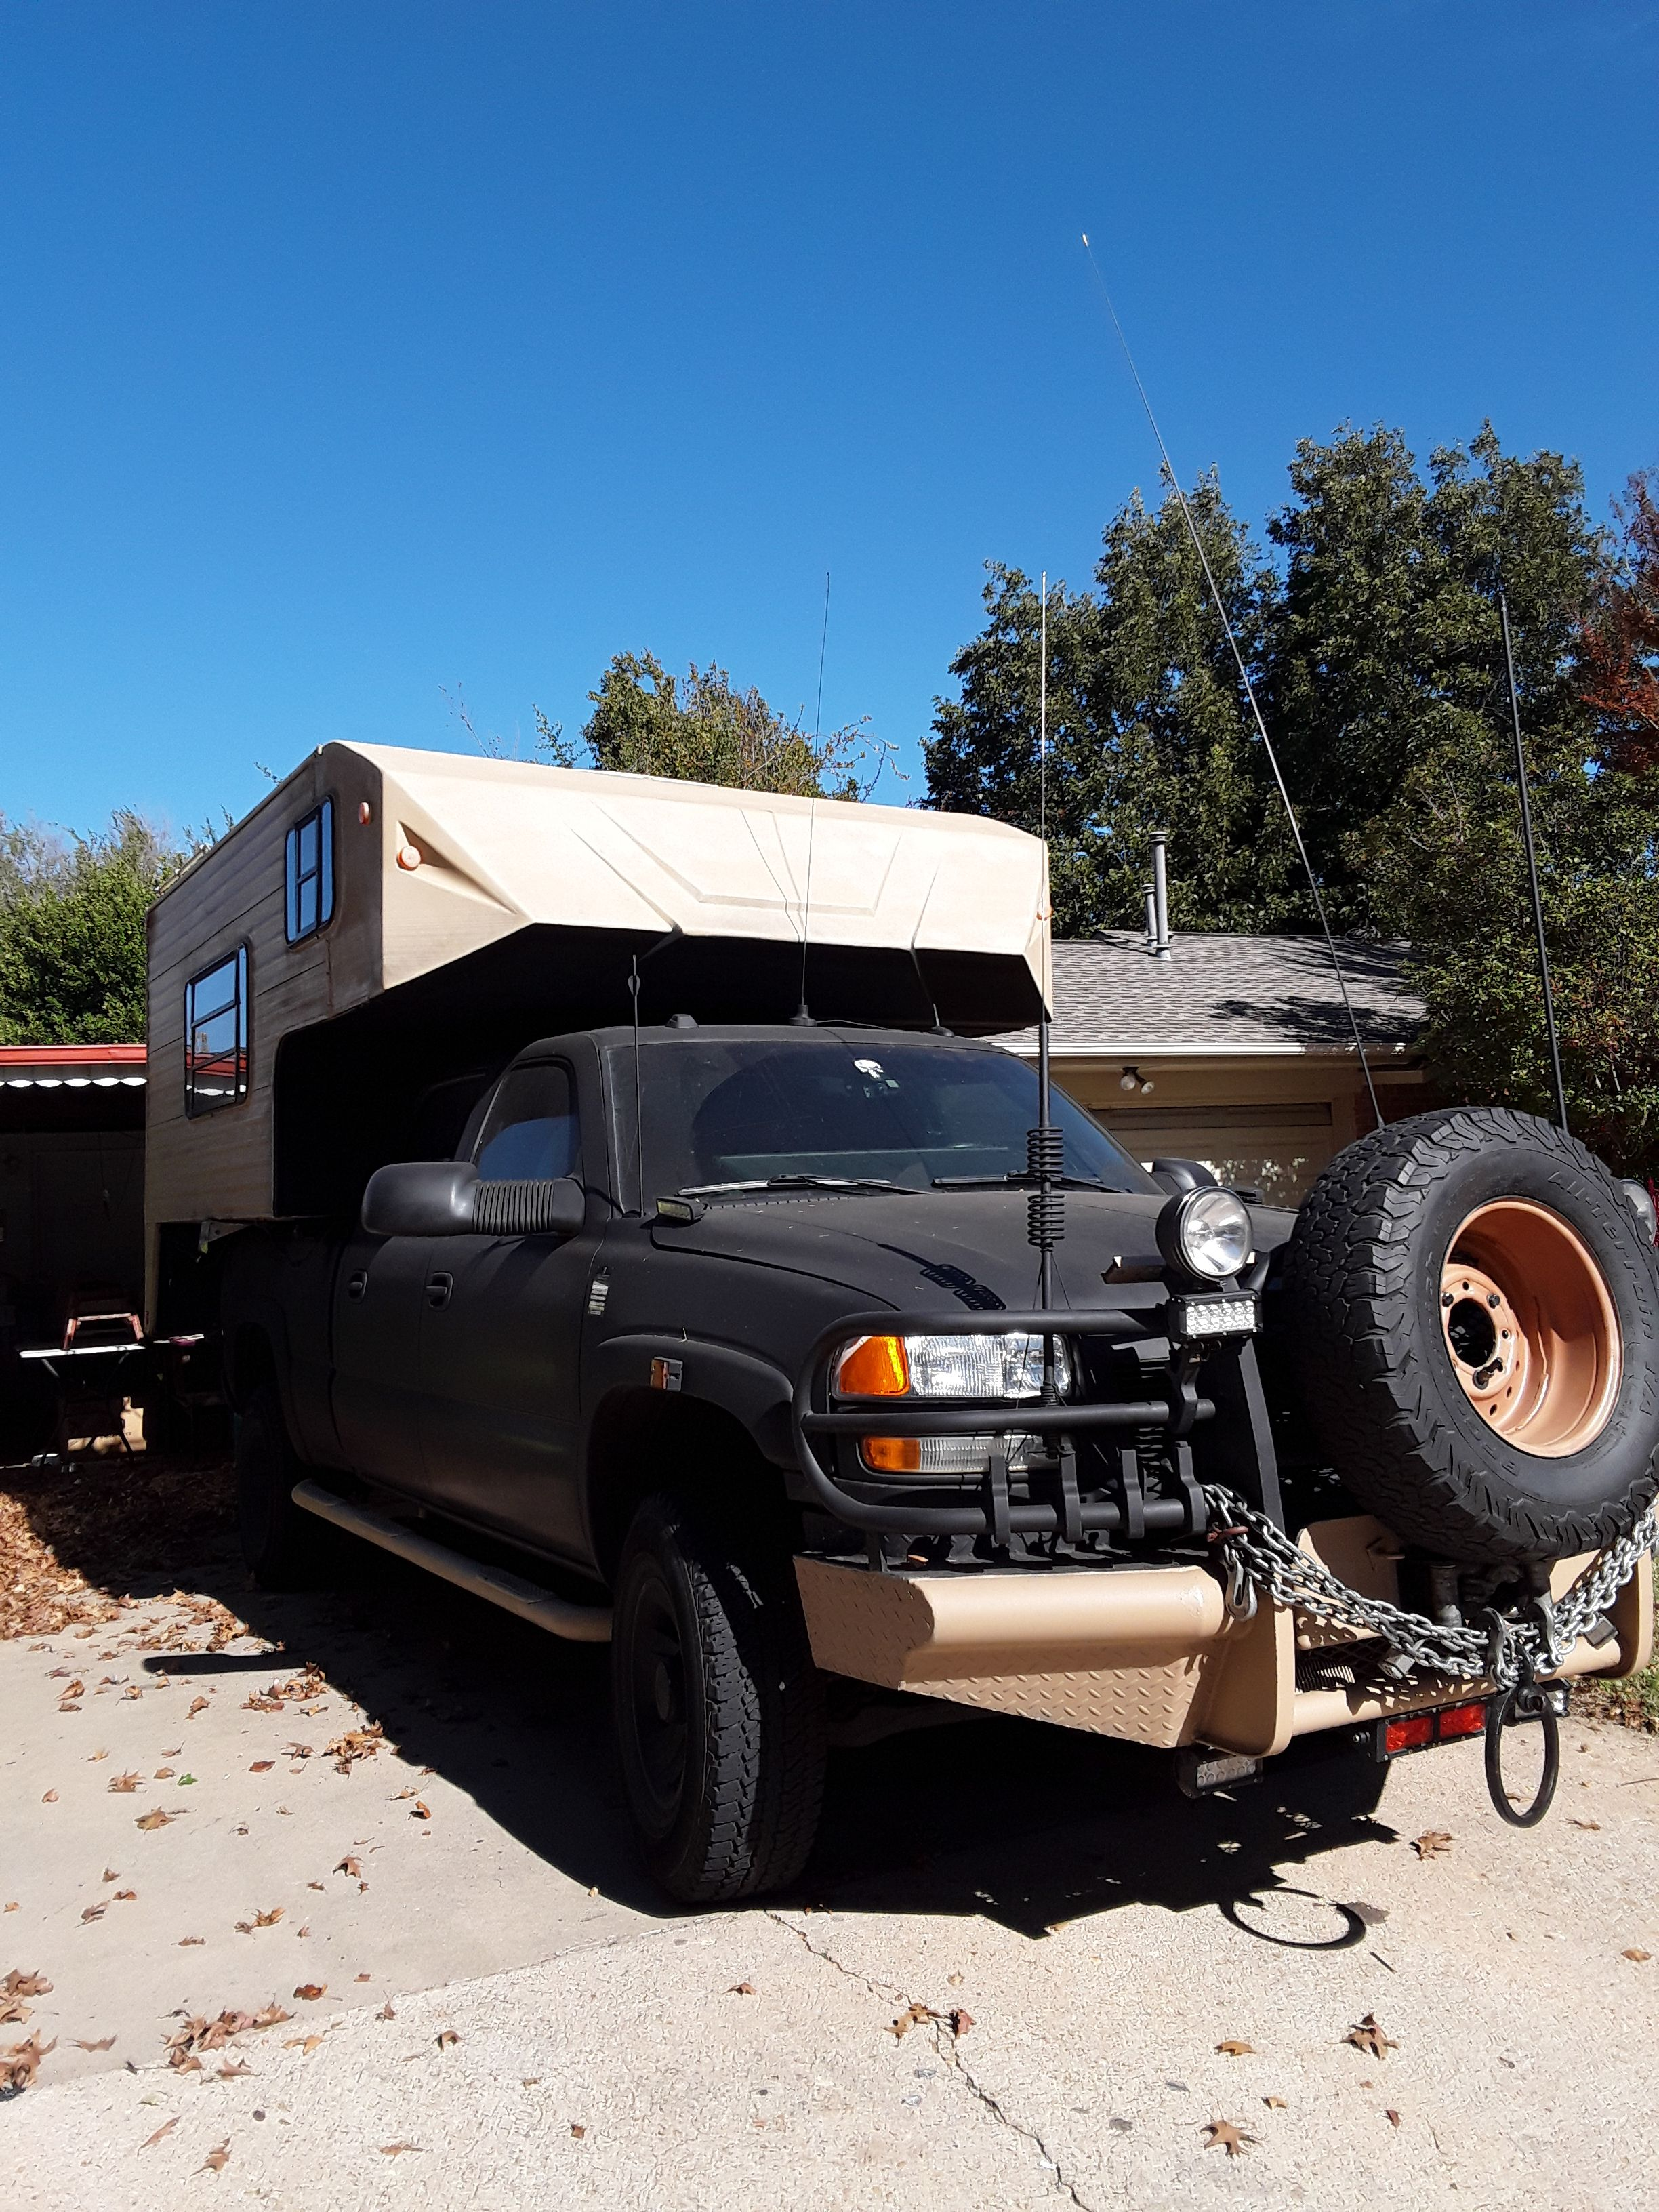 Diy expeditionbug out truck inspired by mad max